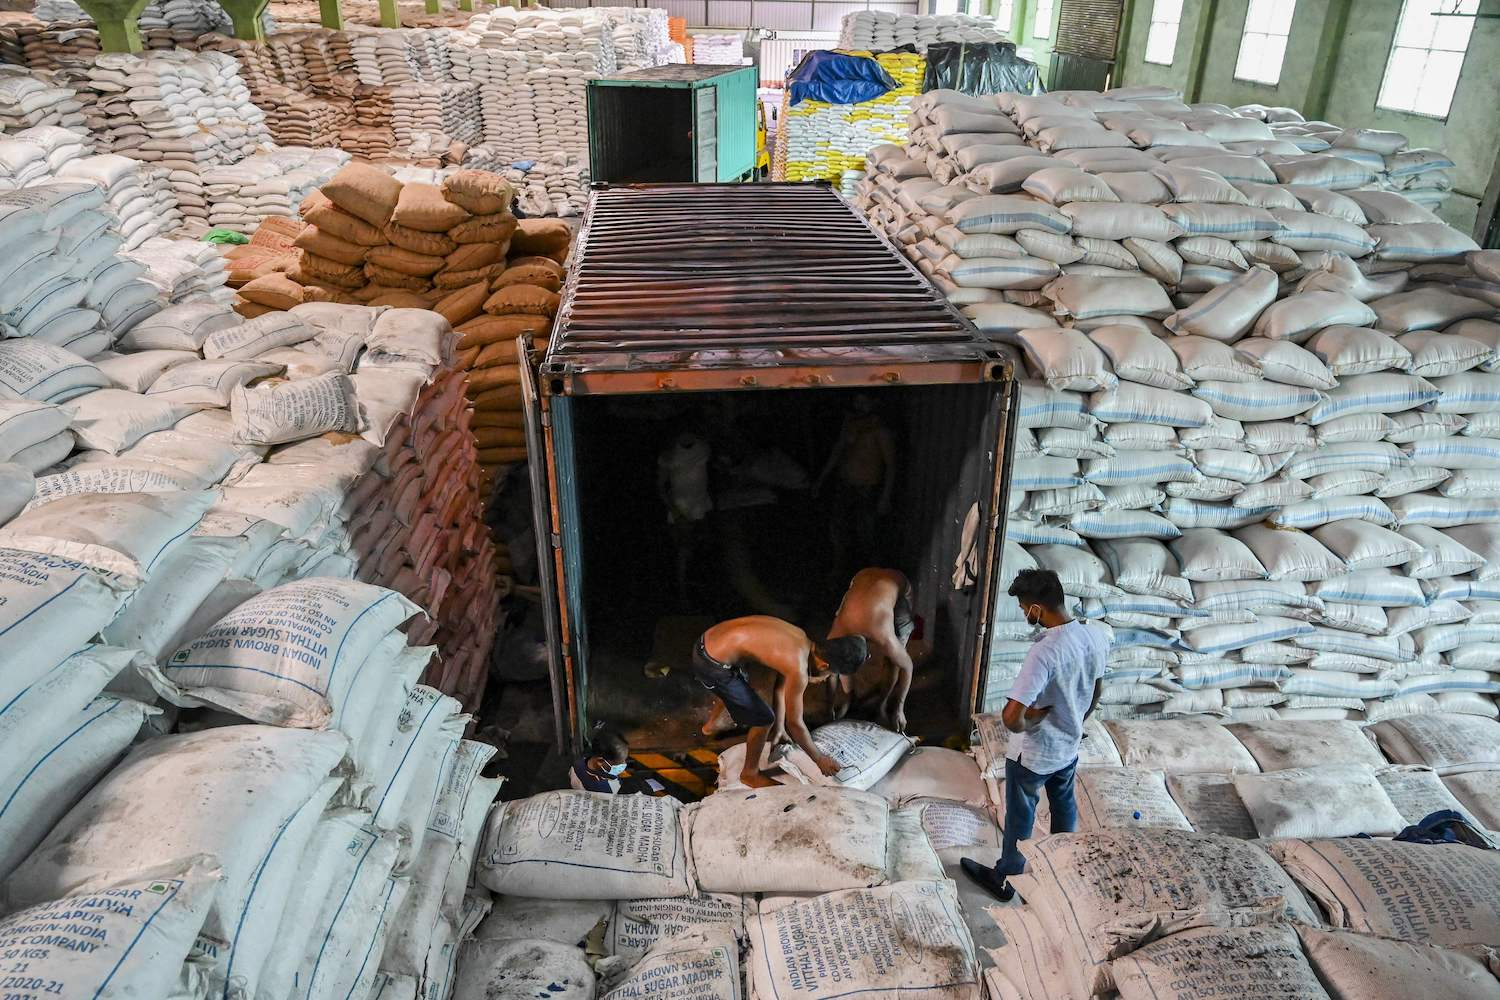 Workers load sugar into a container truck at a private warehouse in Sri Lanka.